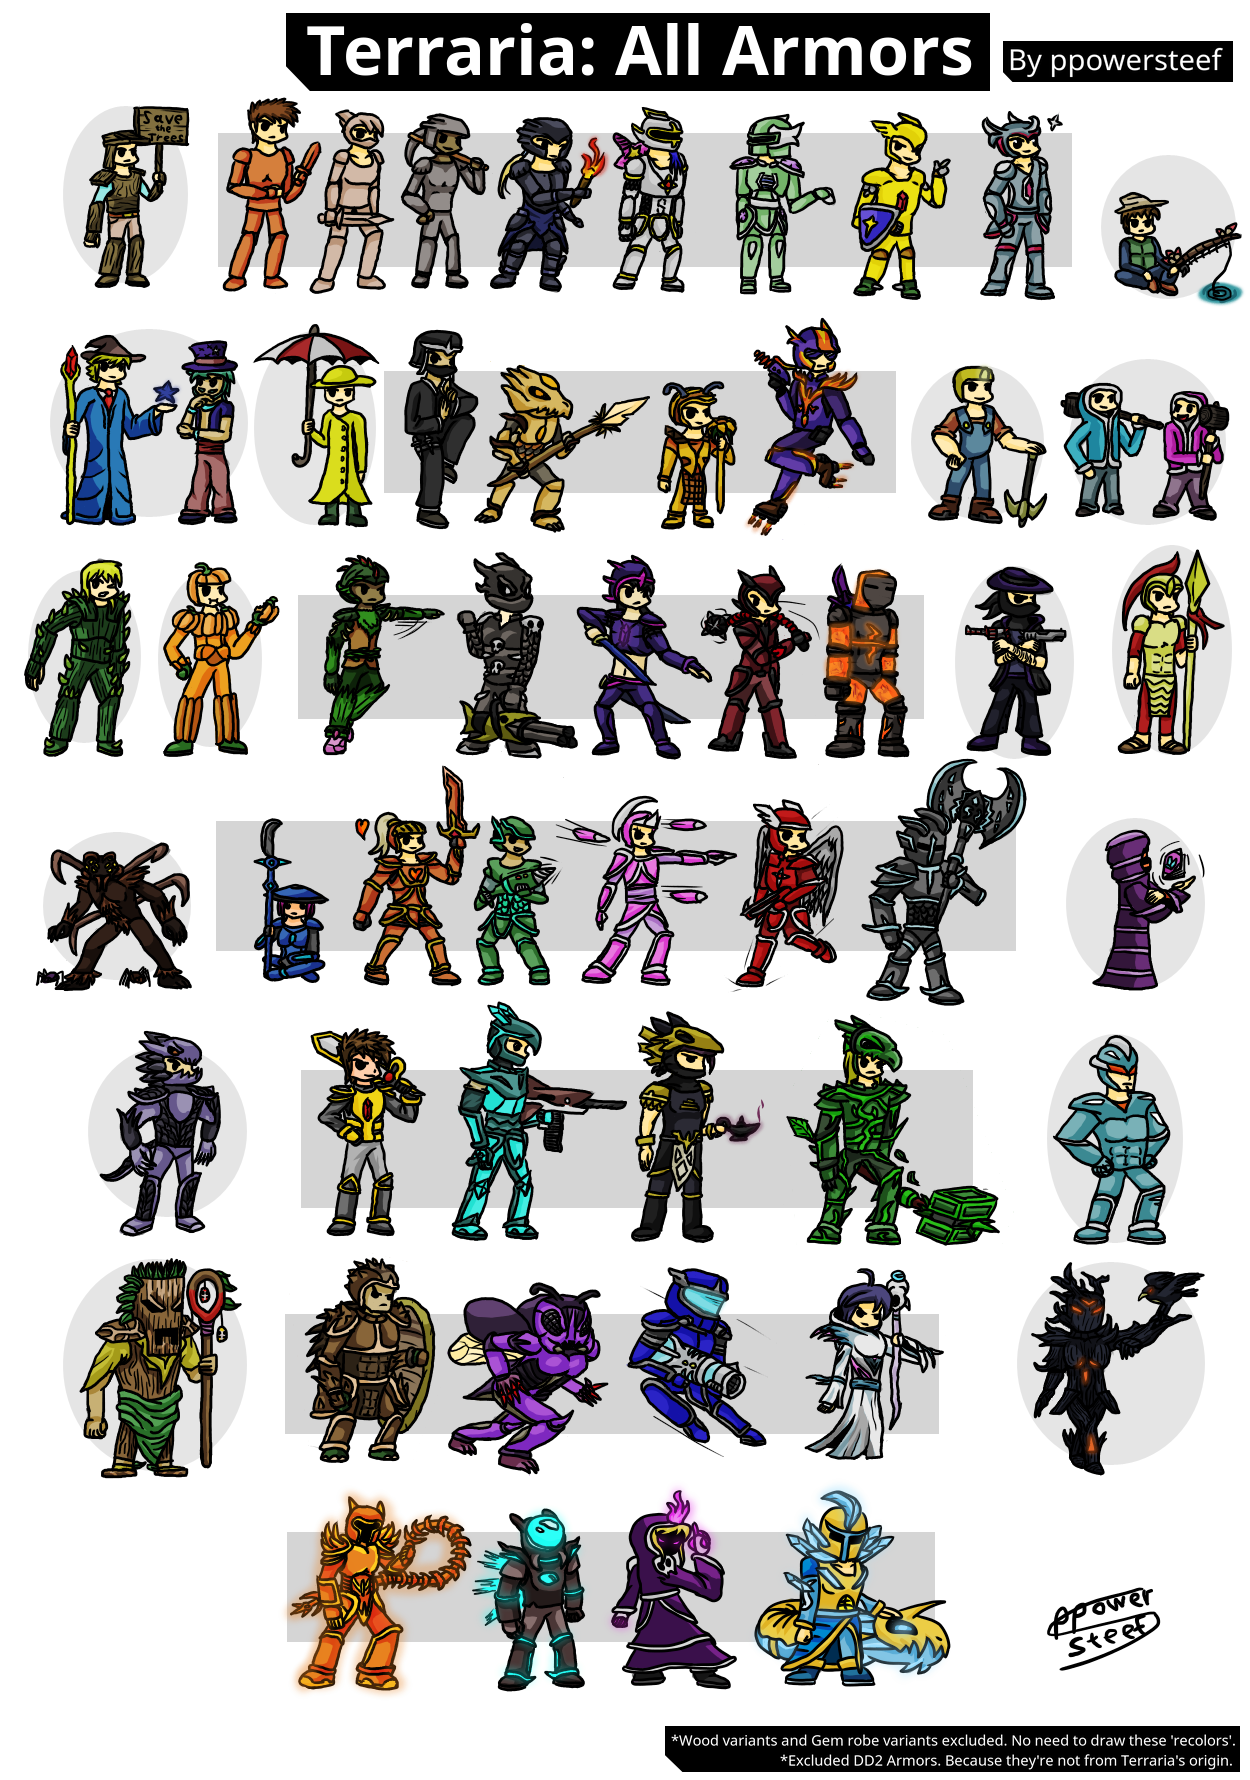 Terraria All Armors 1 3 By Ppowersteef On Deviantart They can be judged based on their appearance and overall usefulness in the game. terraria all armors 1 3 by ppowersteef